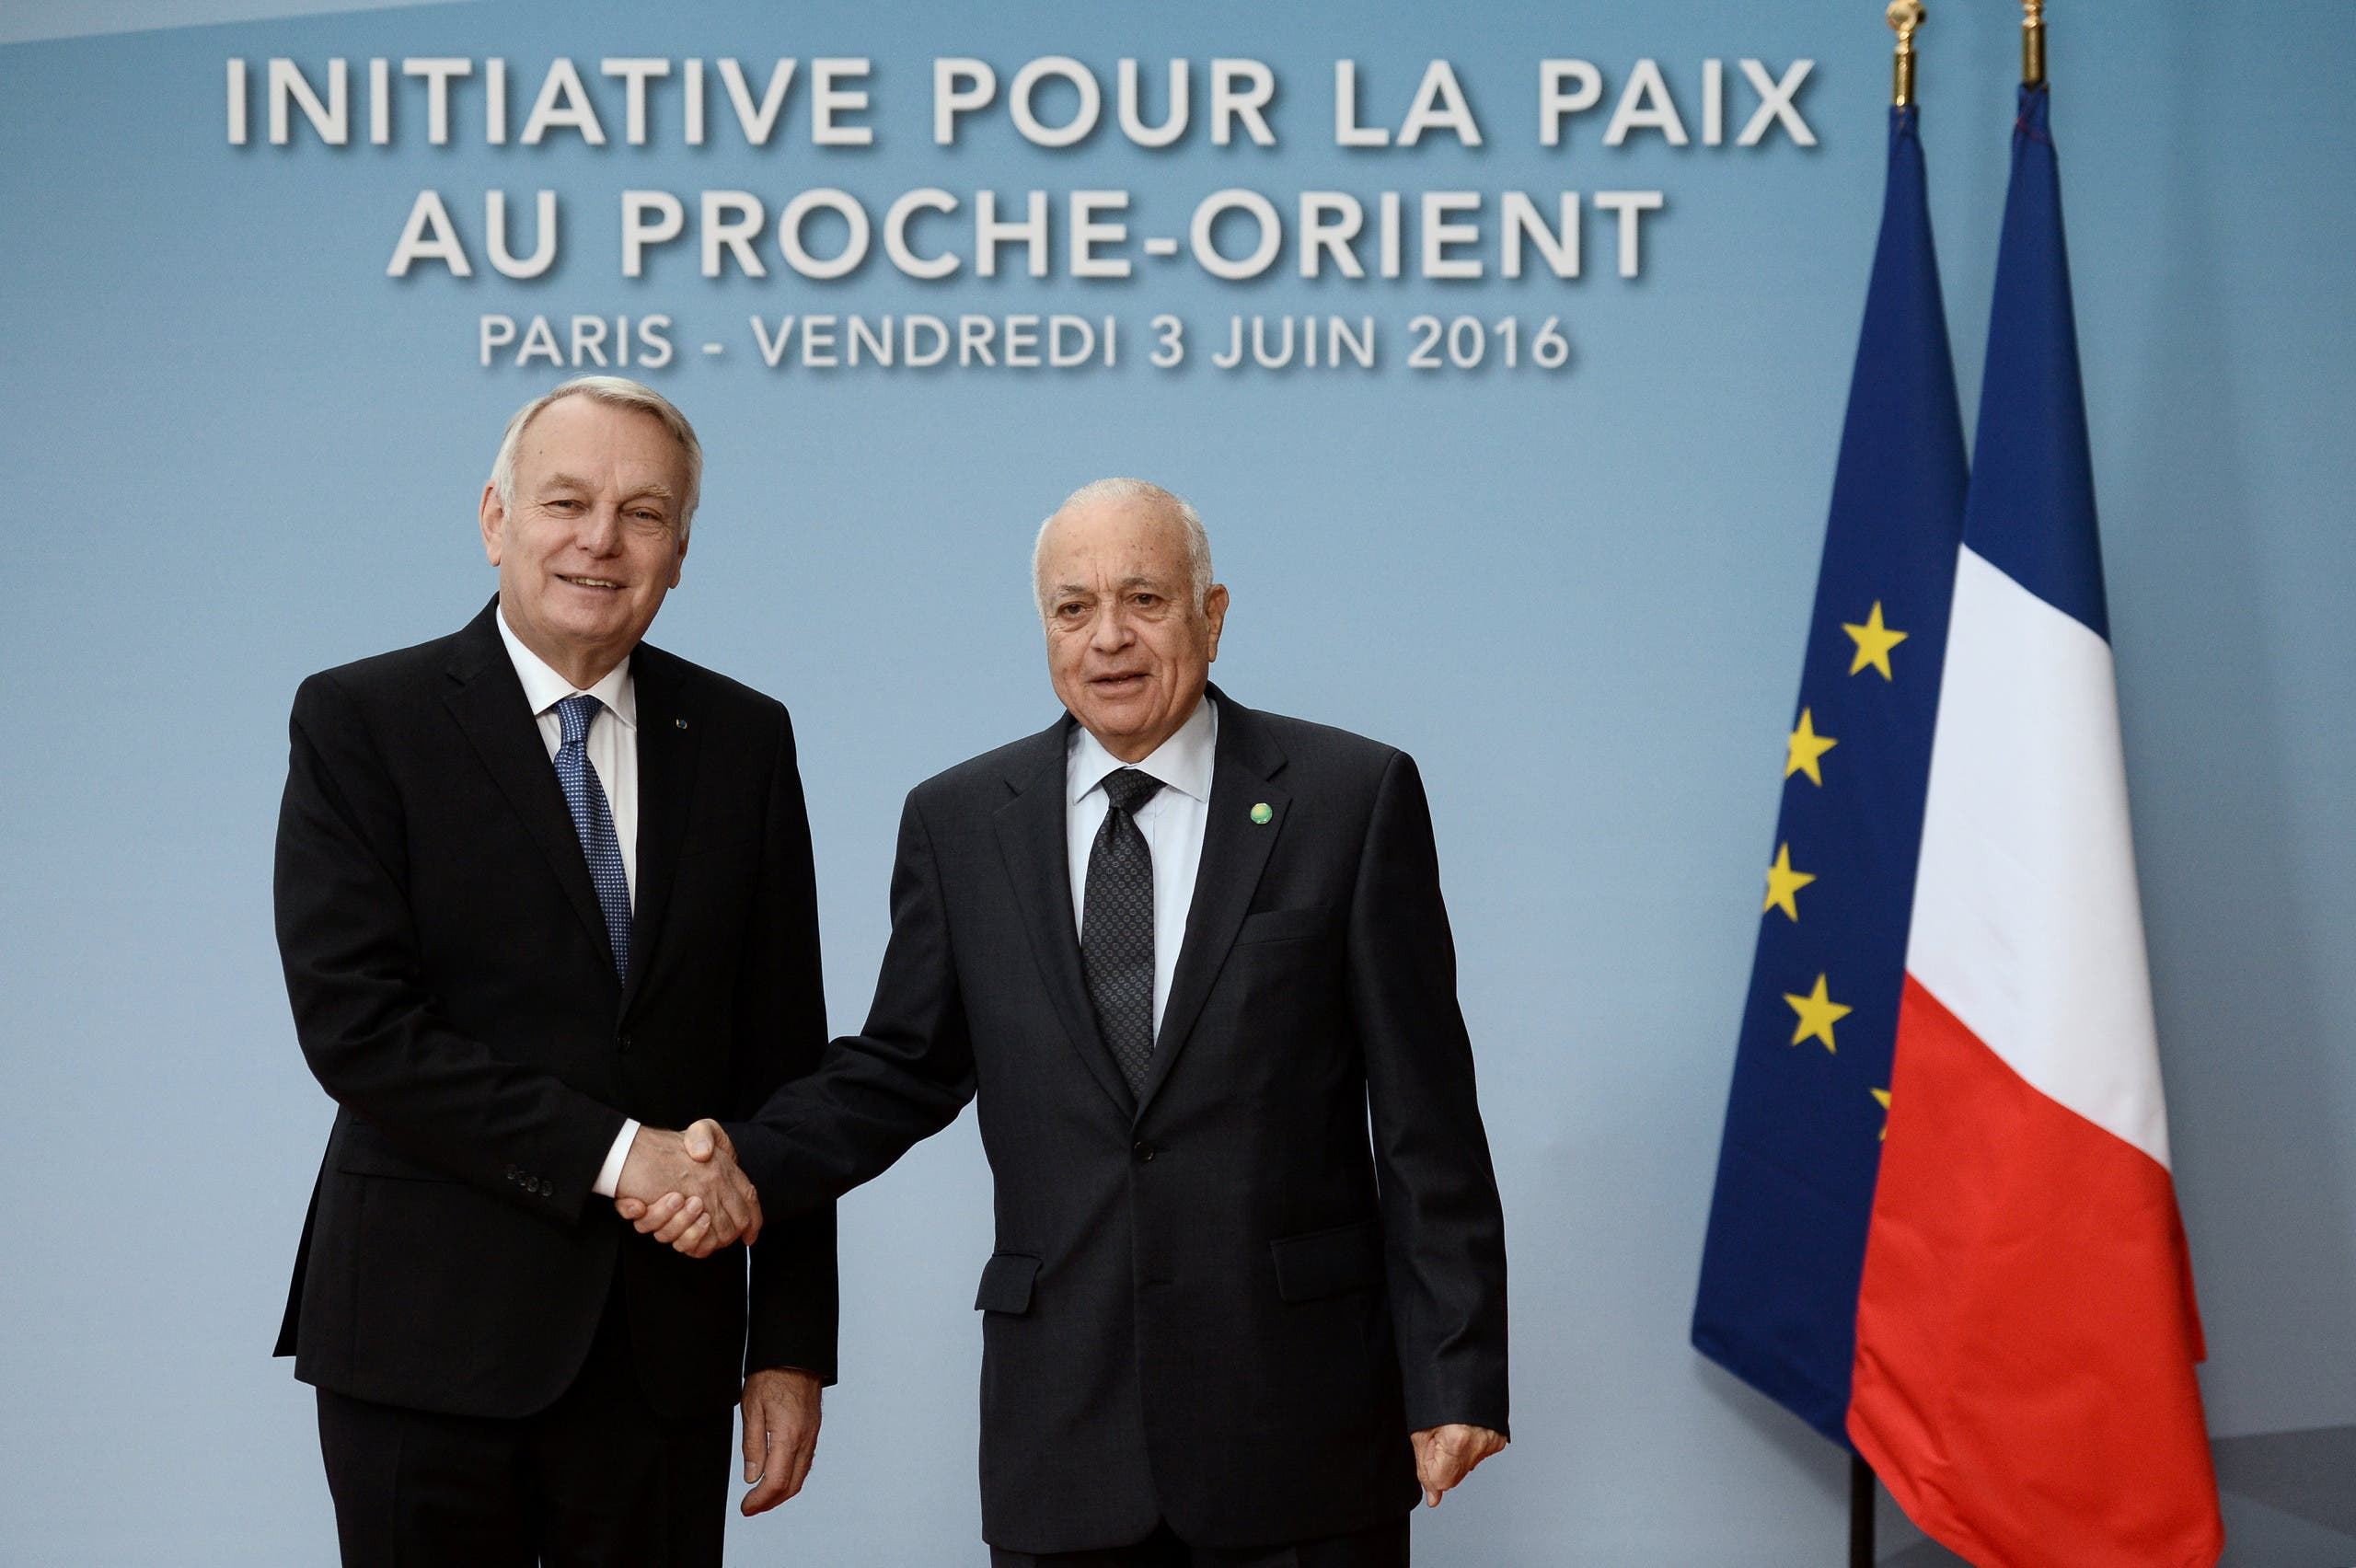 French Foreign Minister Jean Marc Ayrault (L) shakes hands with Arab League secretary-general Nabil Alarabi upon his arrival to attend an international and interministerial conference in a bid to revive the Israeli-Palestinian peace process, in Paris, France, June 3, 2016. REU